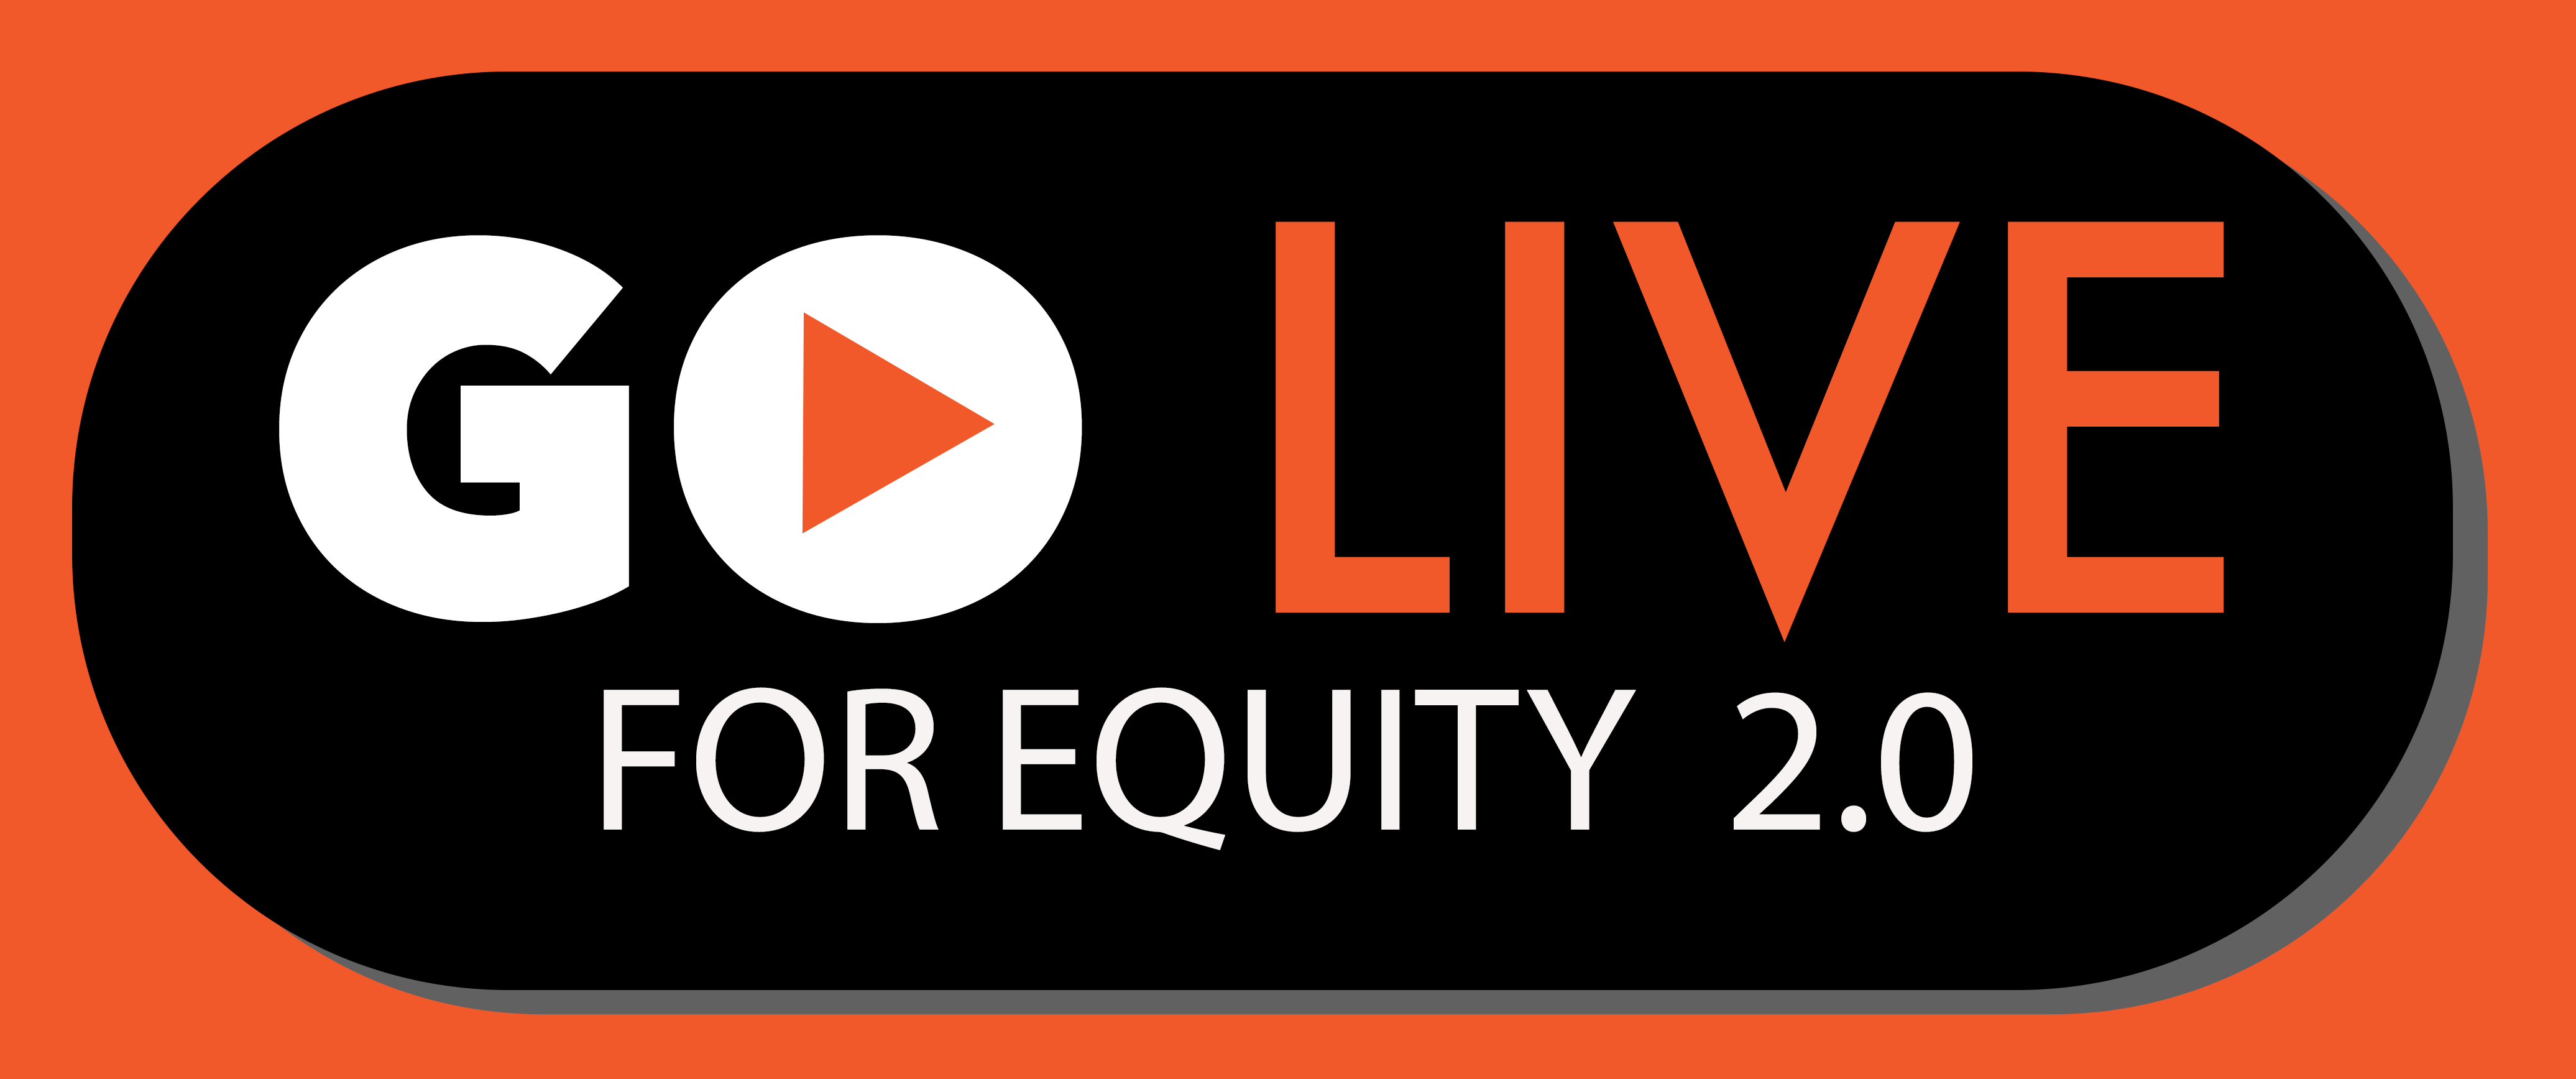 Go LIVE for Equity 2.0